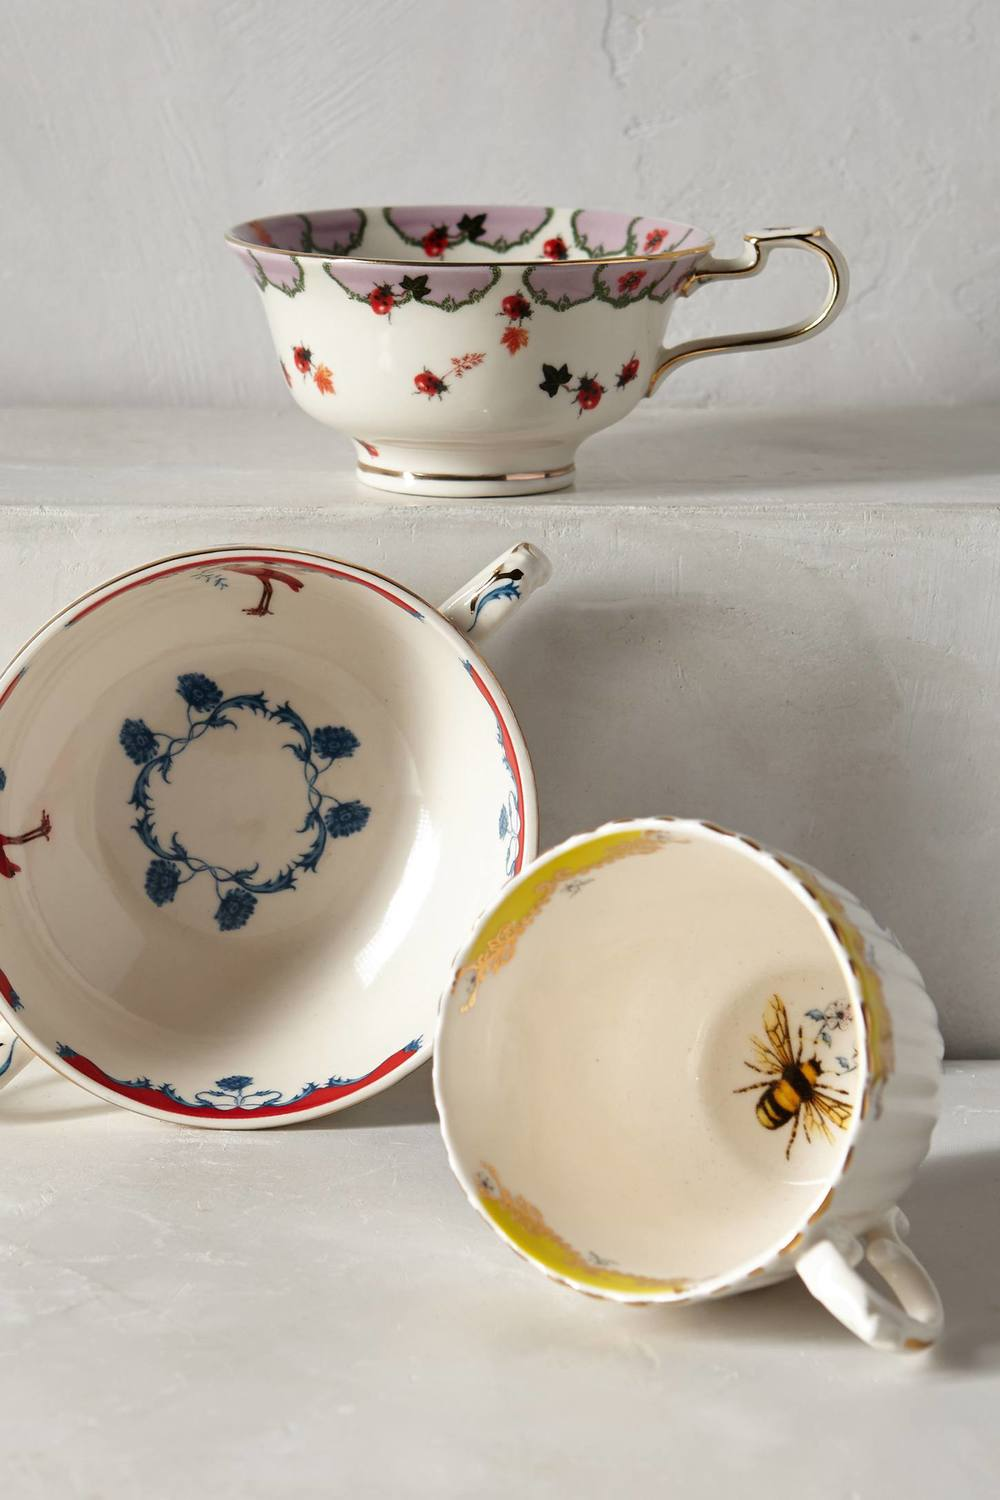 Anthropologie Rota Lou Nature Table Teacups - $14